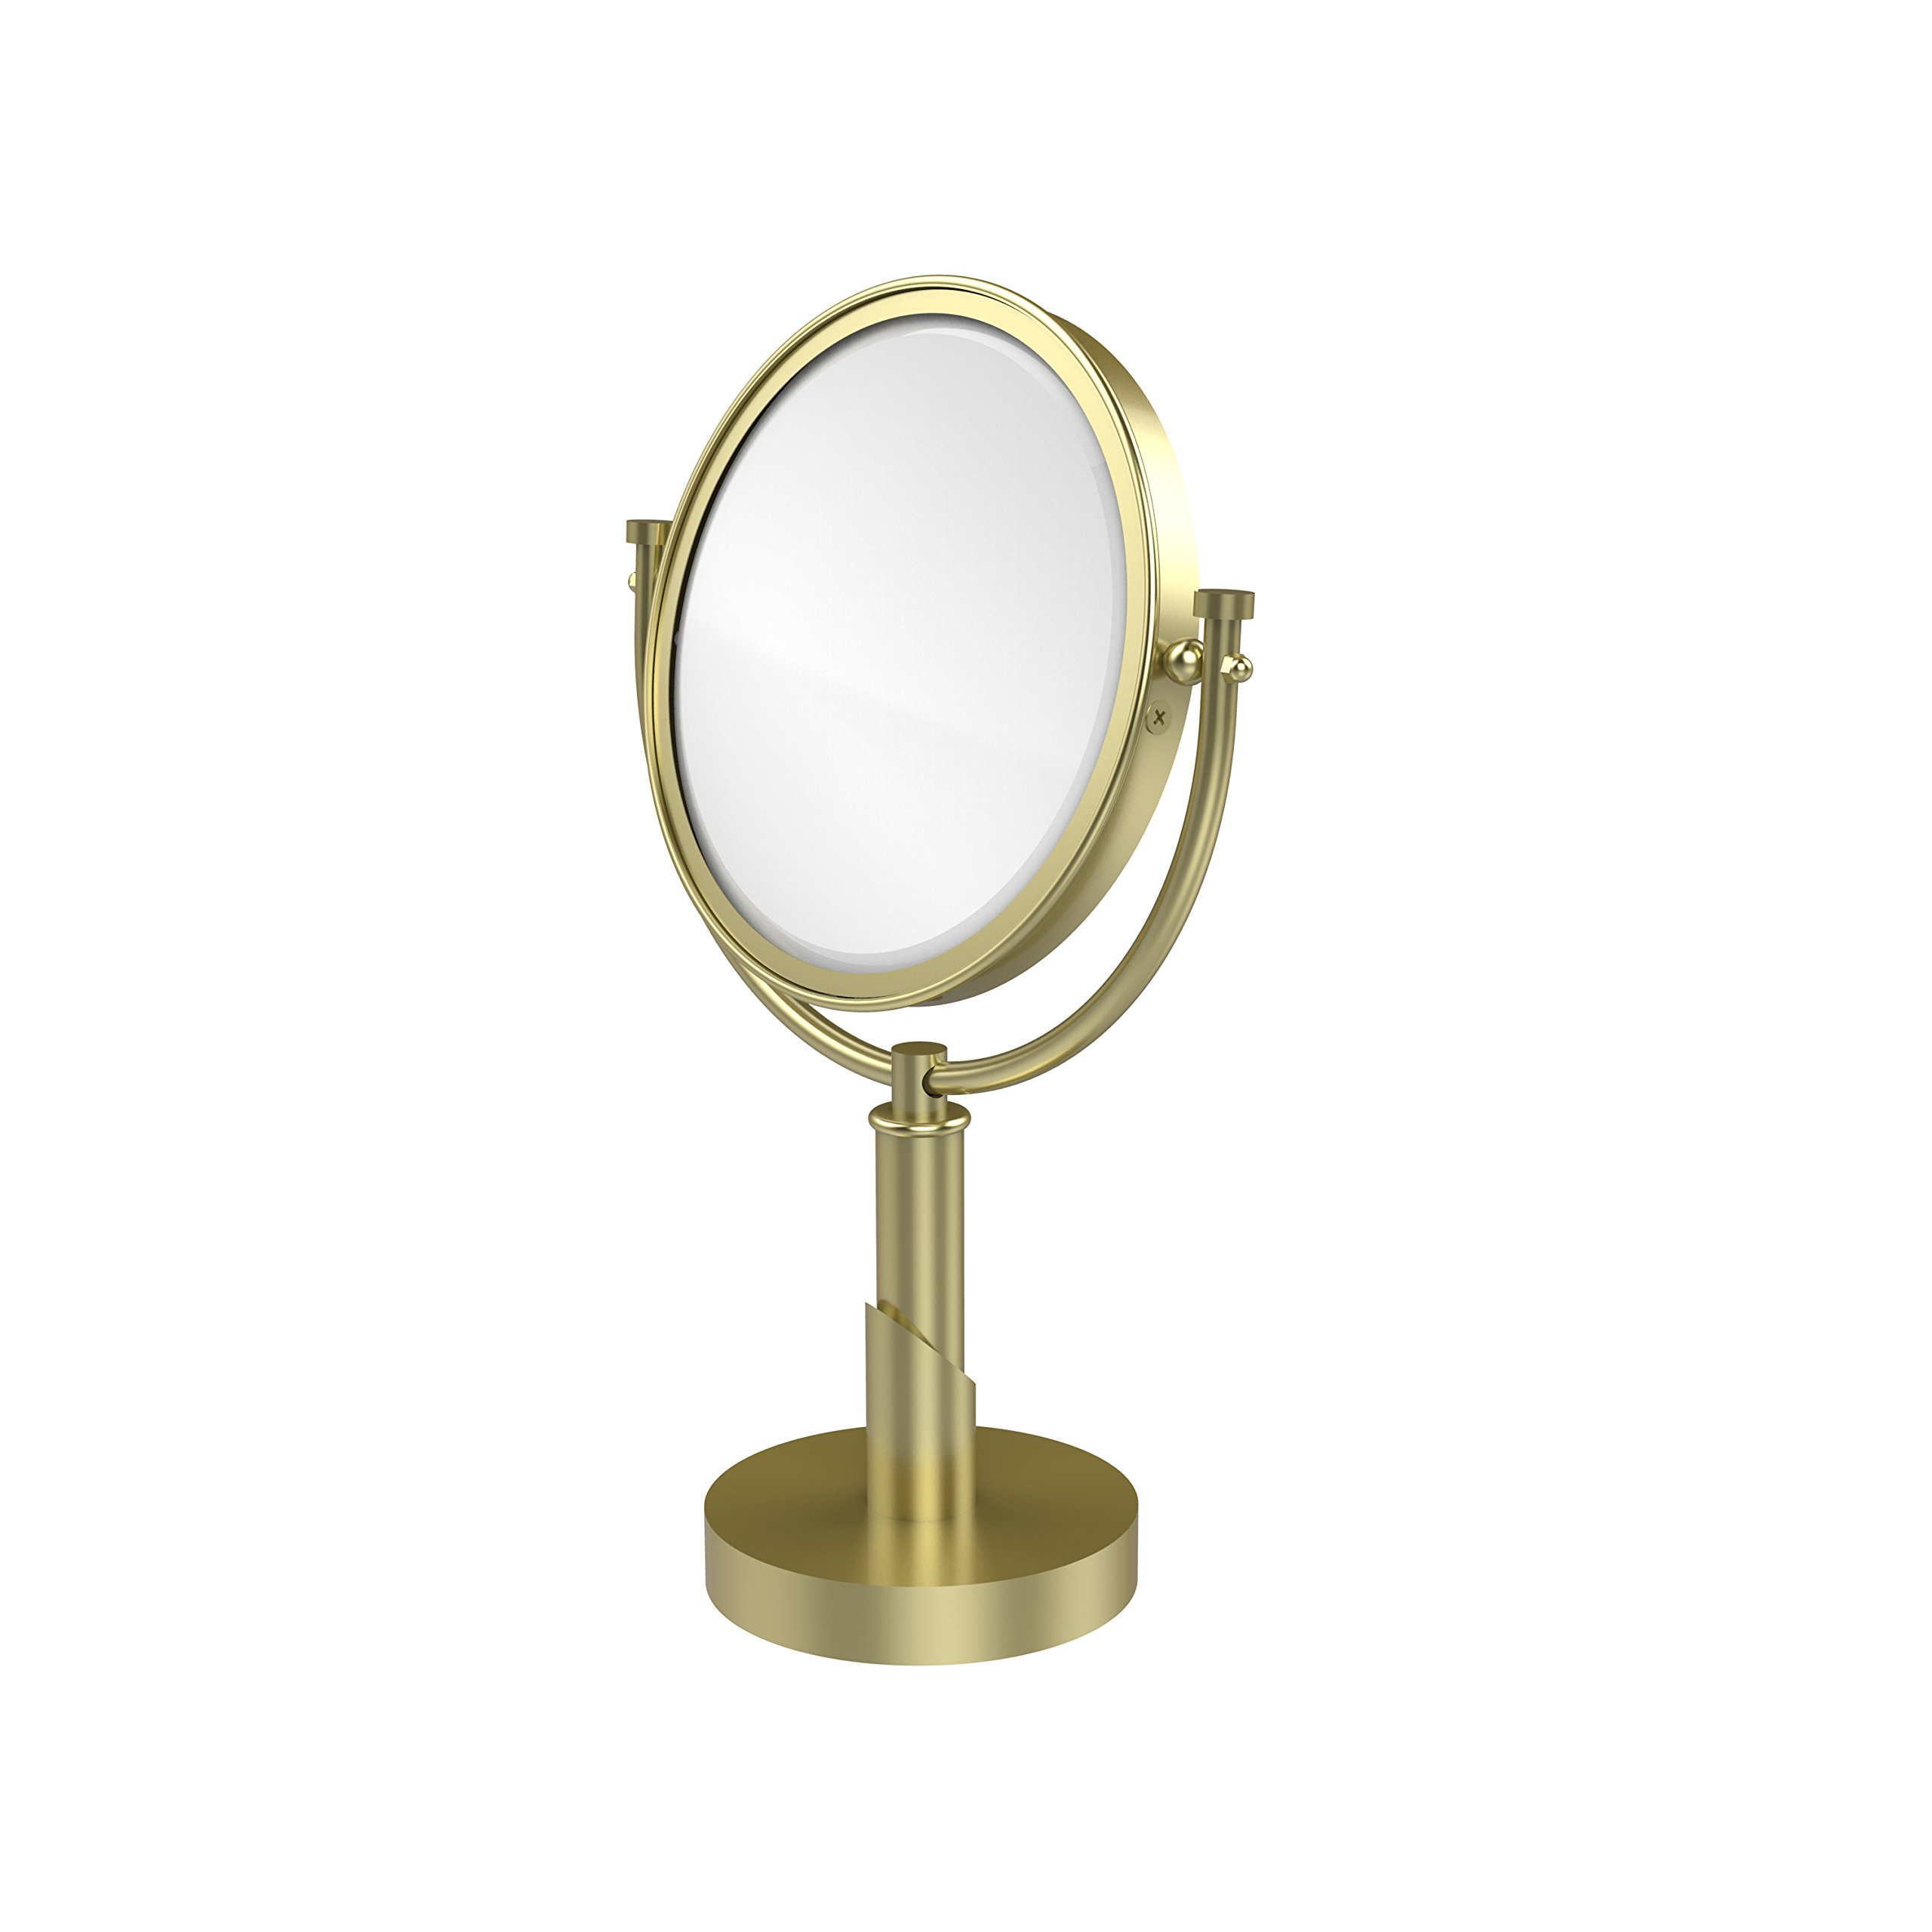 Allied Brass TR-4/2X-SBR Table Mirror with 2X Magnification, Satin Brass